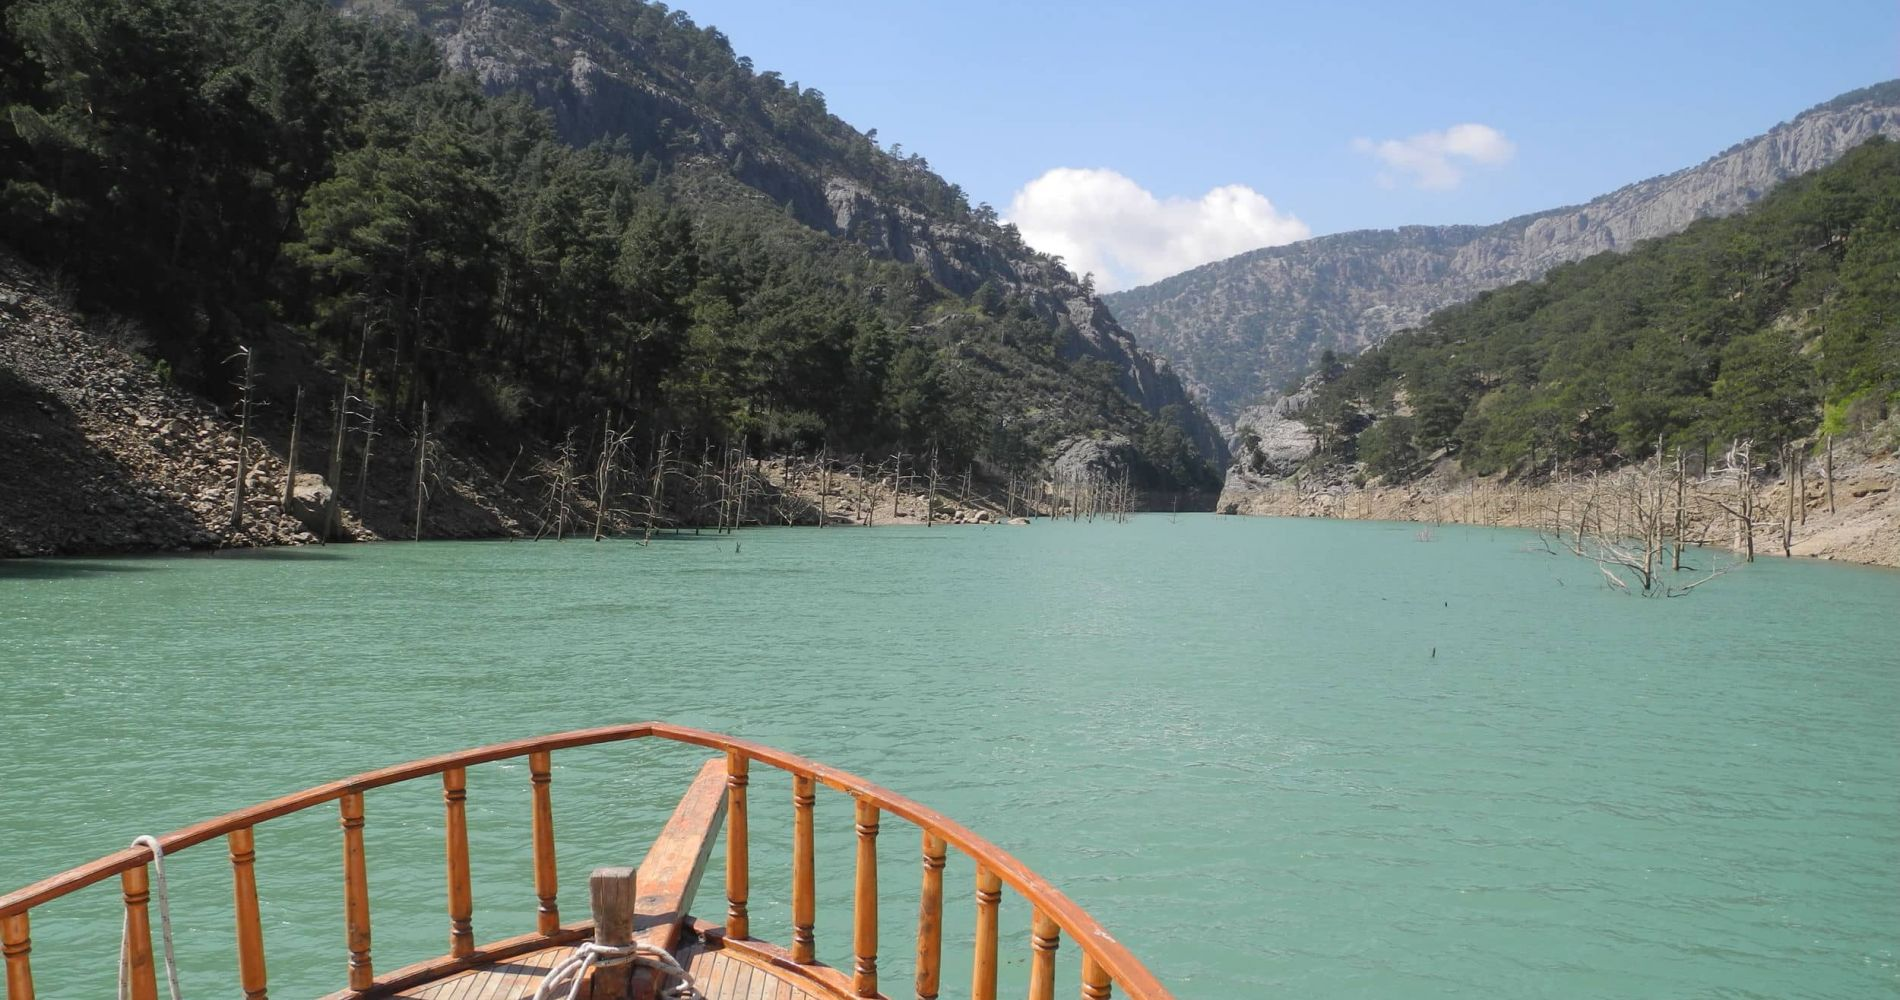 Green Canyon Boat Experience in Turkey